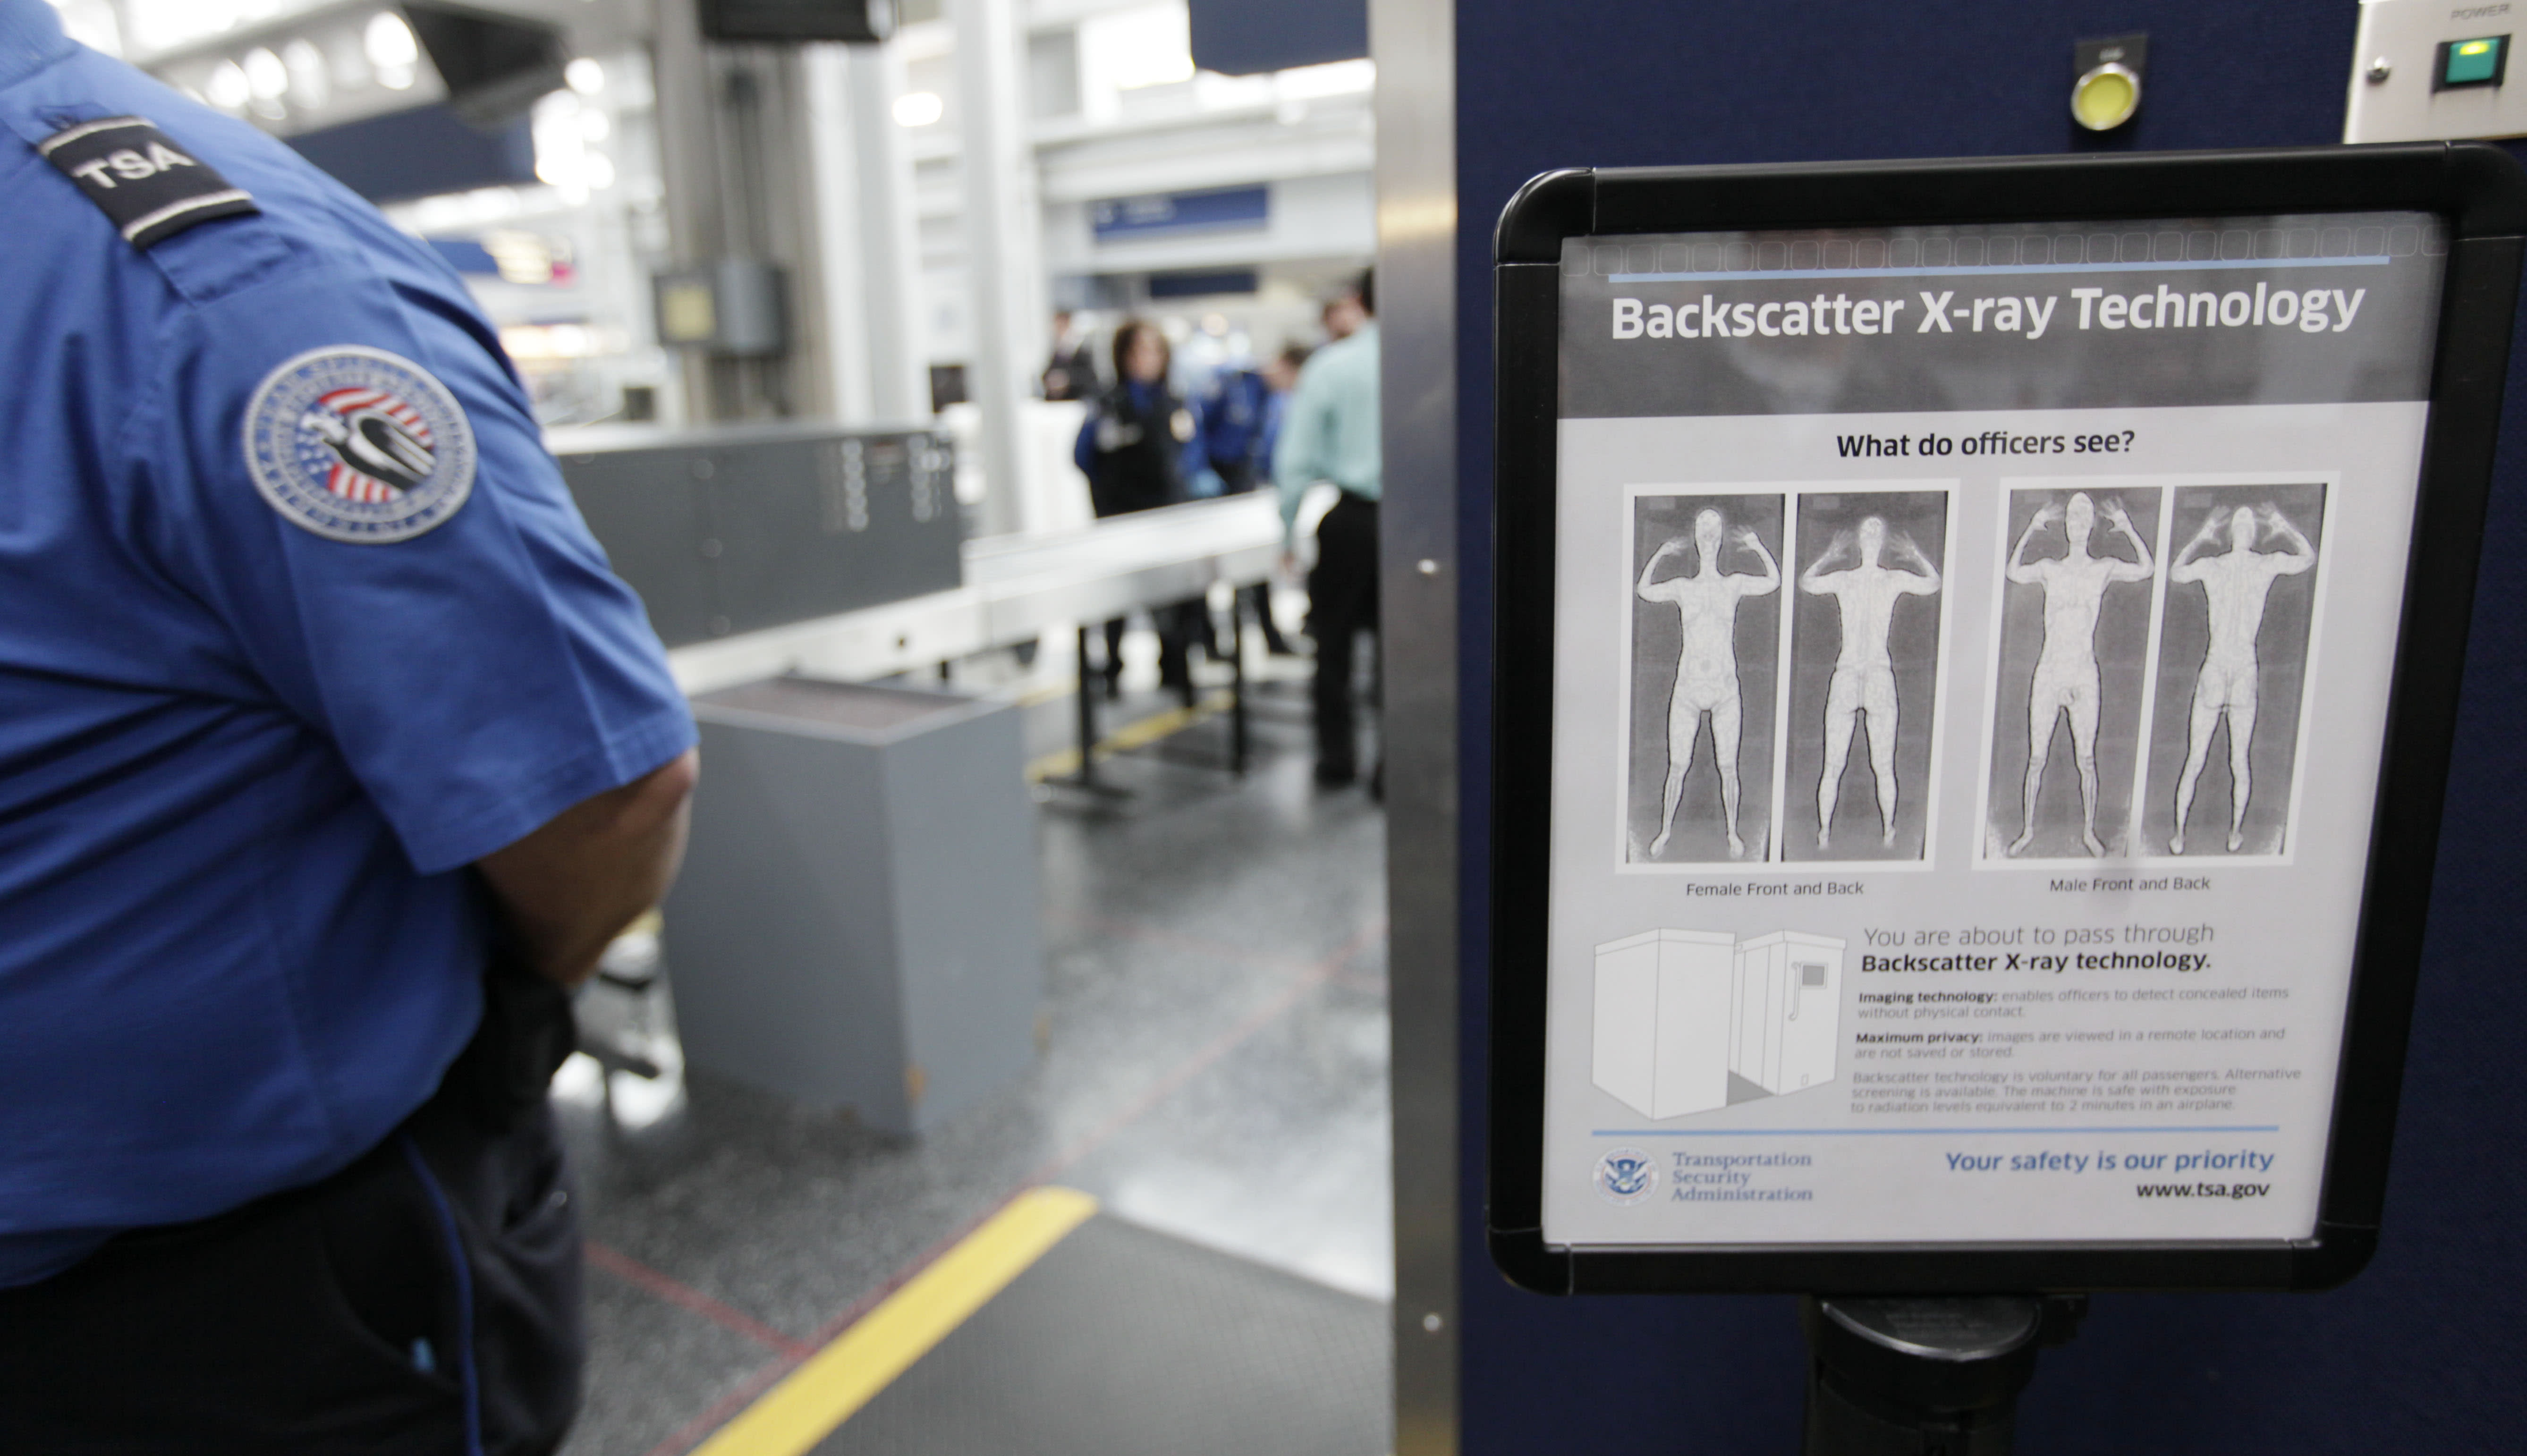 FILE - In this March 15, 2010 file photo, a sign next to a body scanner describes what Transportation Security Administration officers see on their computer screens as volunteers go through the first full body X-rayscanner installed at O'Hare International Airport in Chicago. The Transportation Security Administration has been replacing the huge X-ray machines with smaller, millimeter wave body scanners at seven major U.S. airports. The new technology produces a cartoon-like outline rather than naked images of passengers produced by using X-rays. (AP Photo/M. Spencer Green, File)